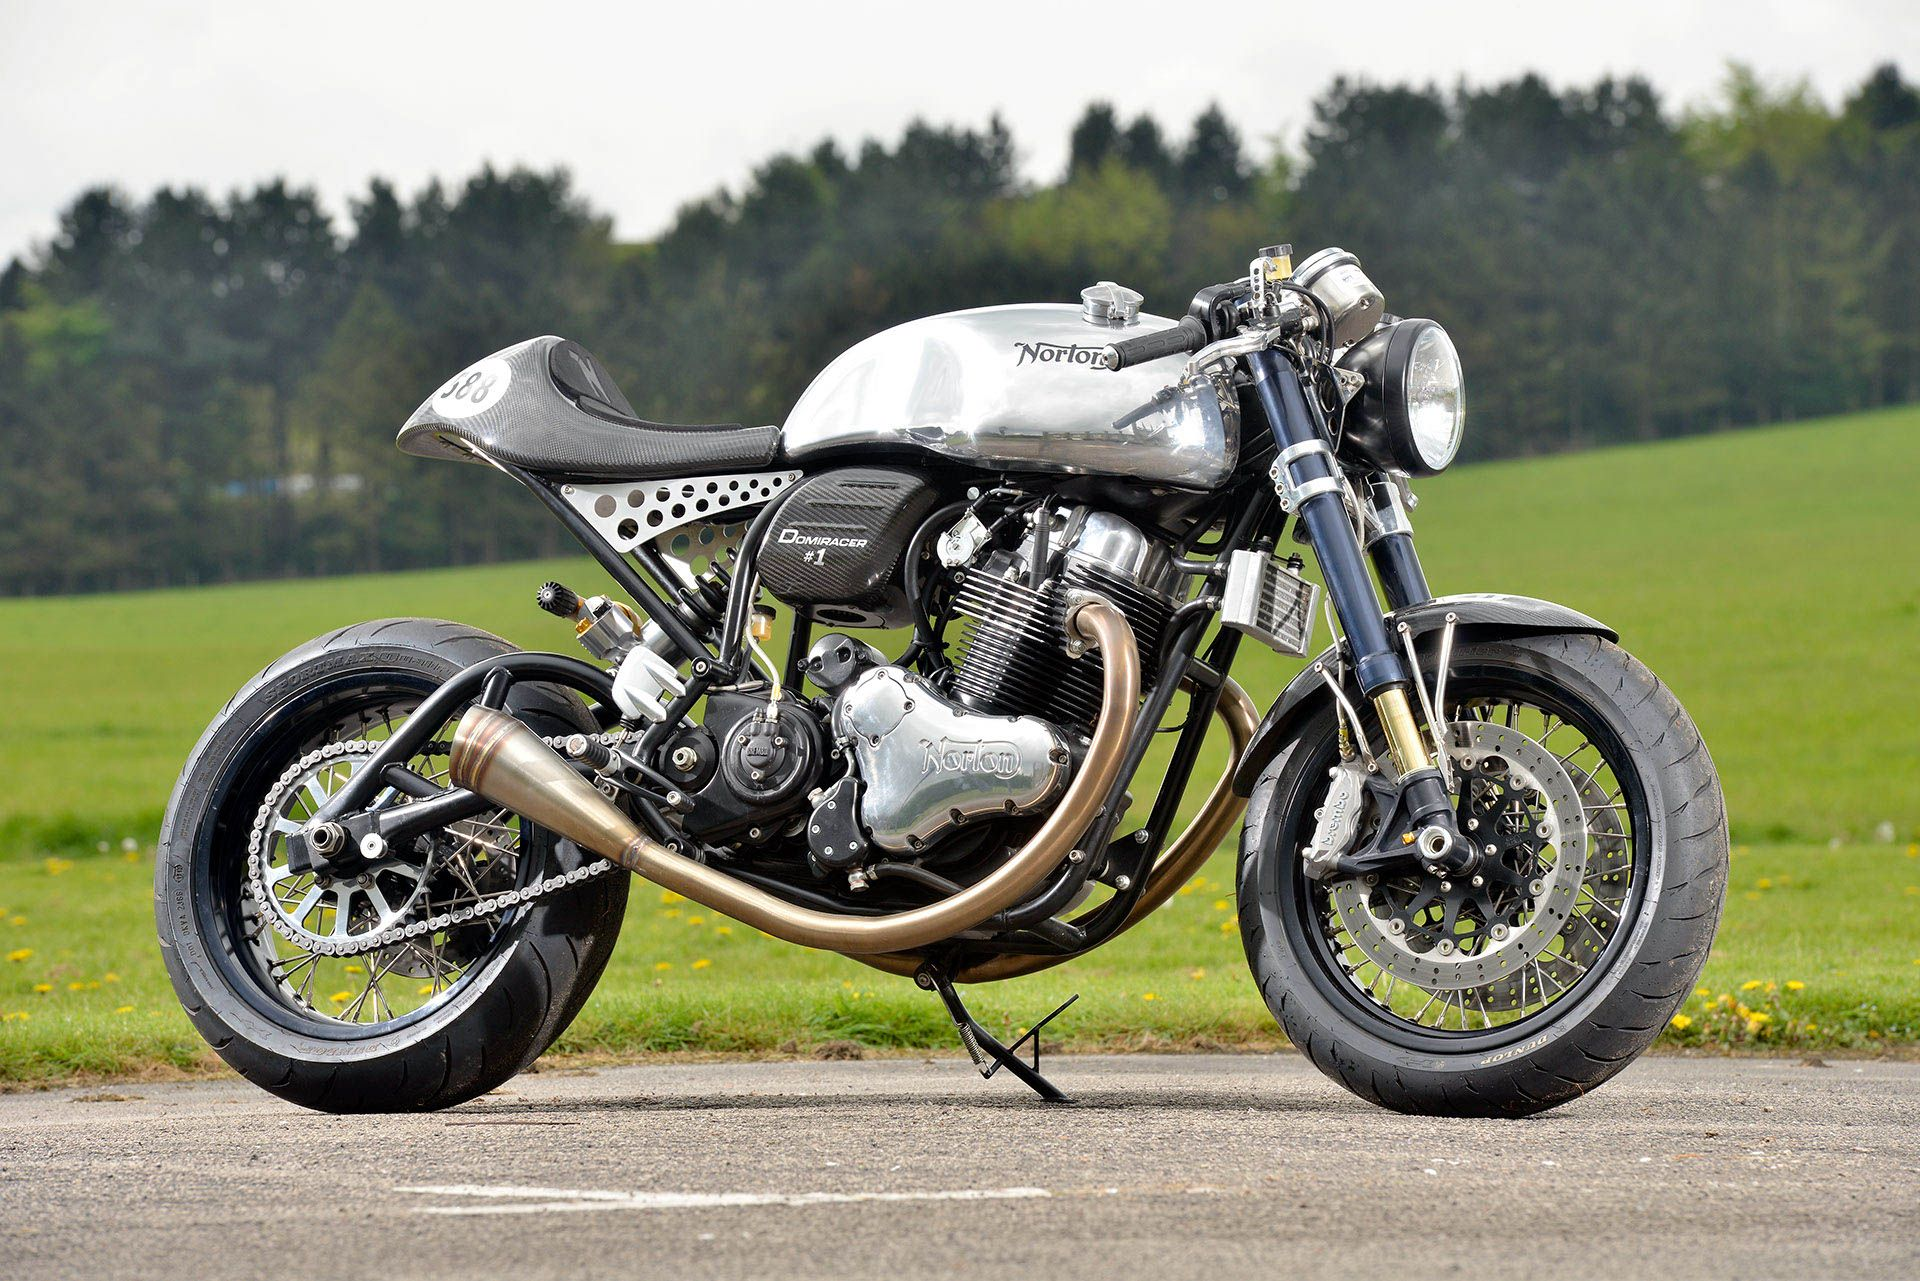 norton domiracer - Google Search